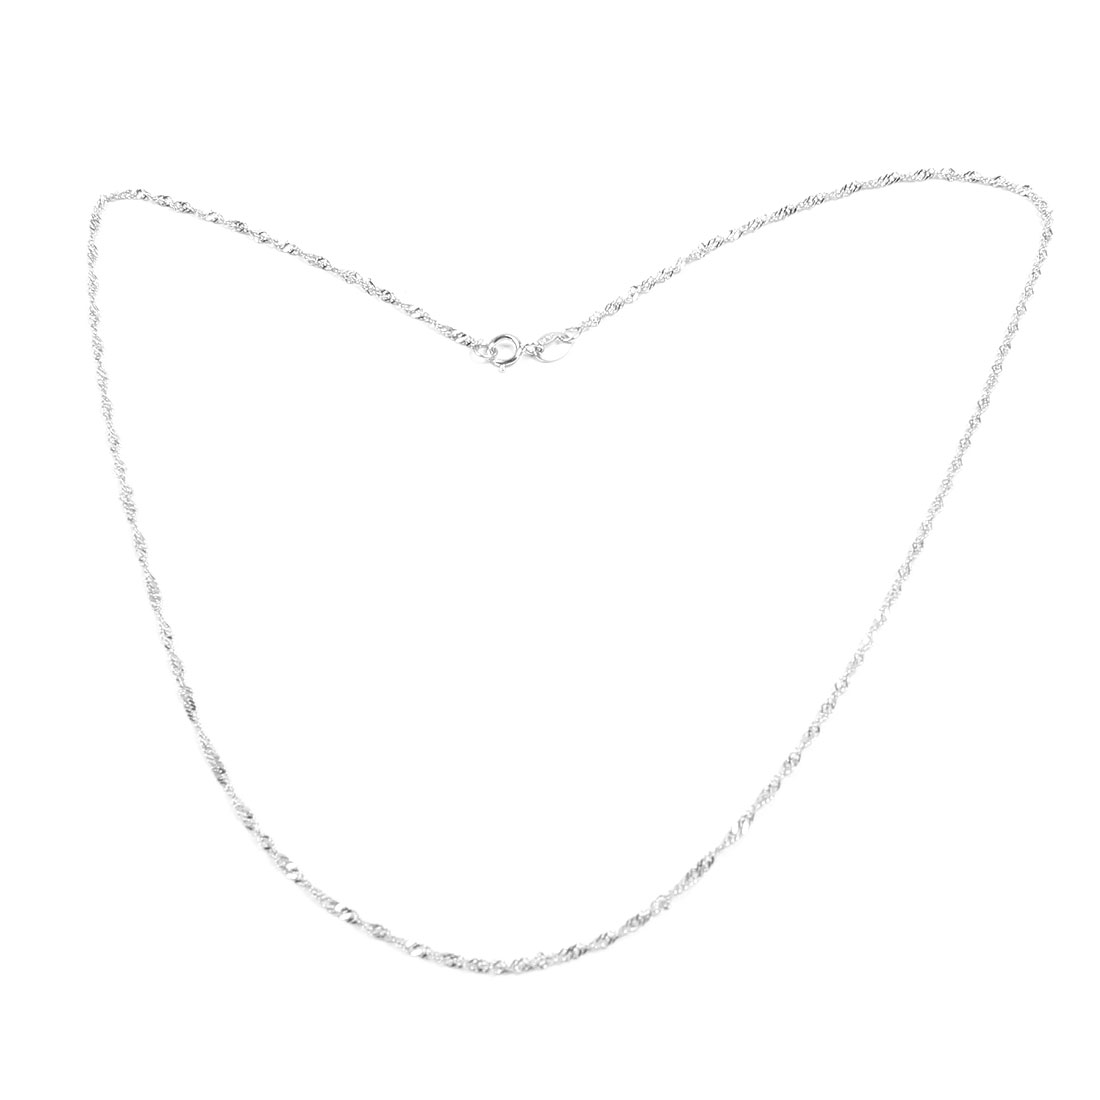 """17.3"""" Girth Silver Tone Alloy Necklace Chain Jewelry Gift for Ladies"""